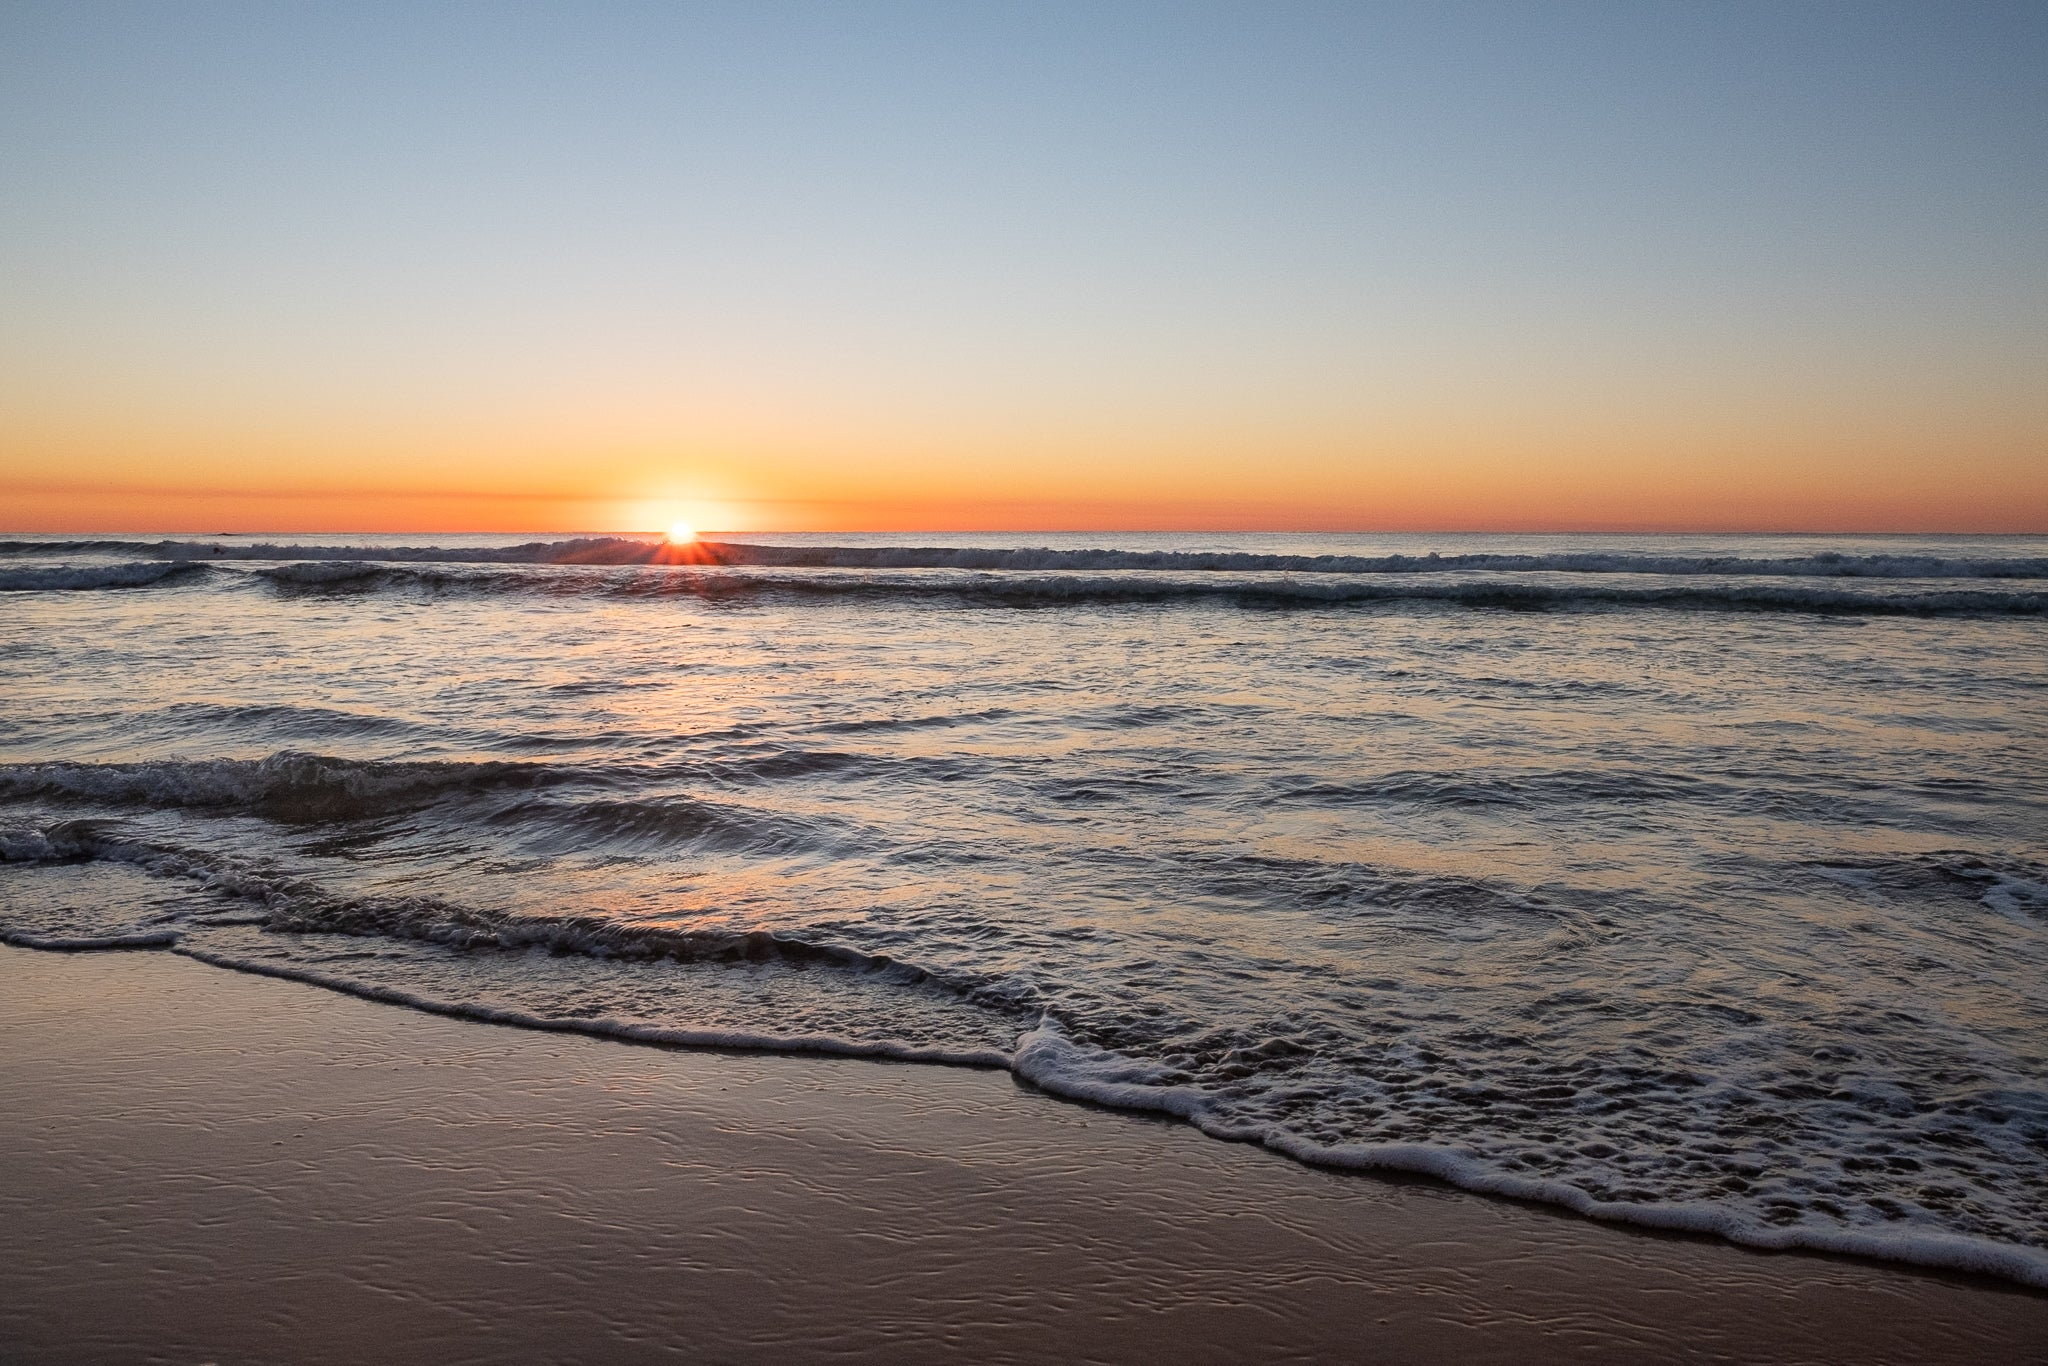 Sunrise photo from the 25th May 2019 at Queenscliff Beach in Sydney